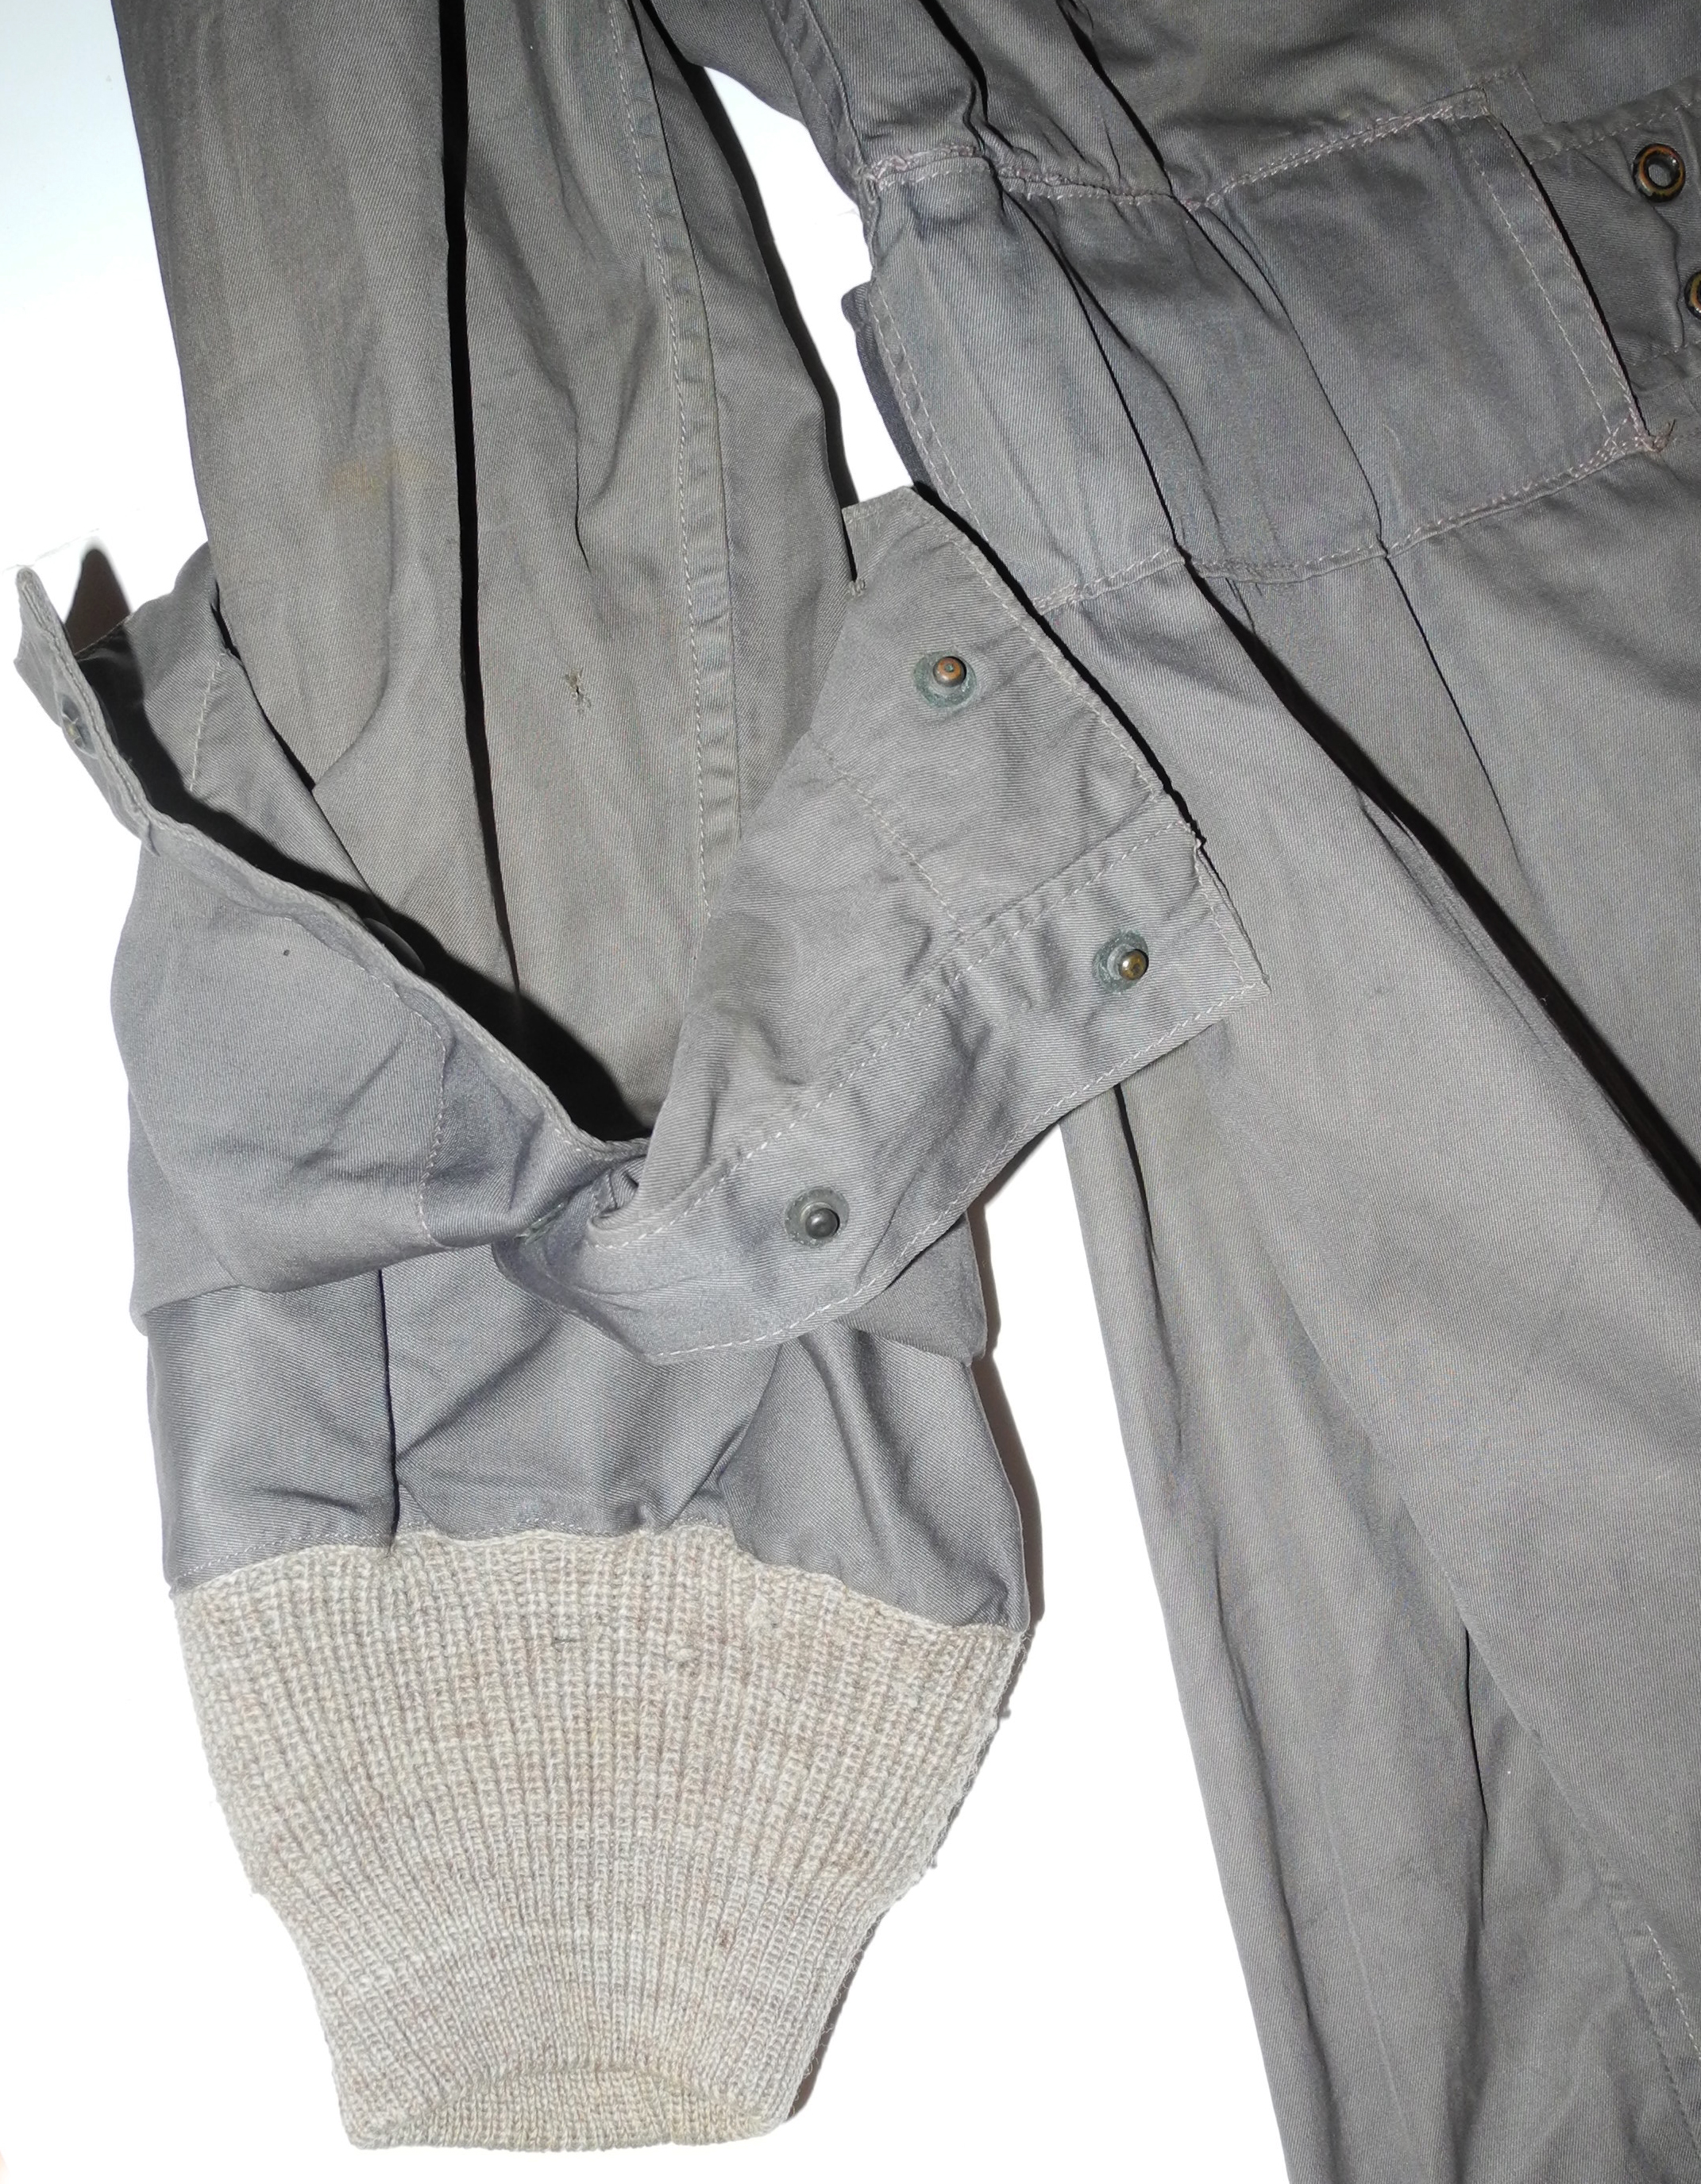 RAF Beadon flying suit with rare silk scarf still attached